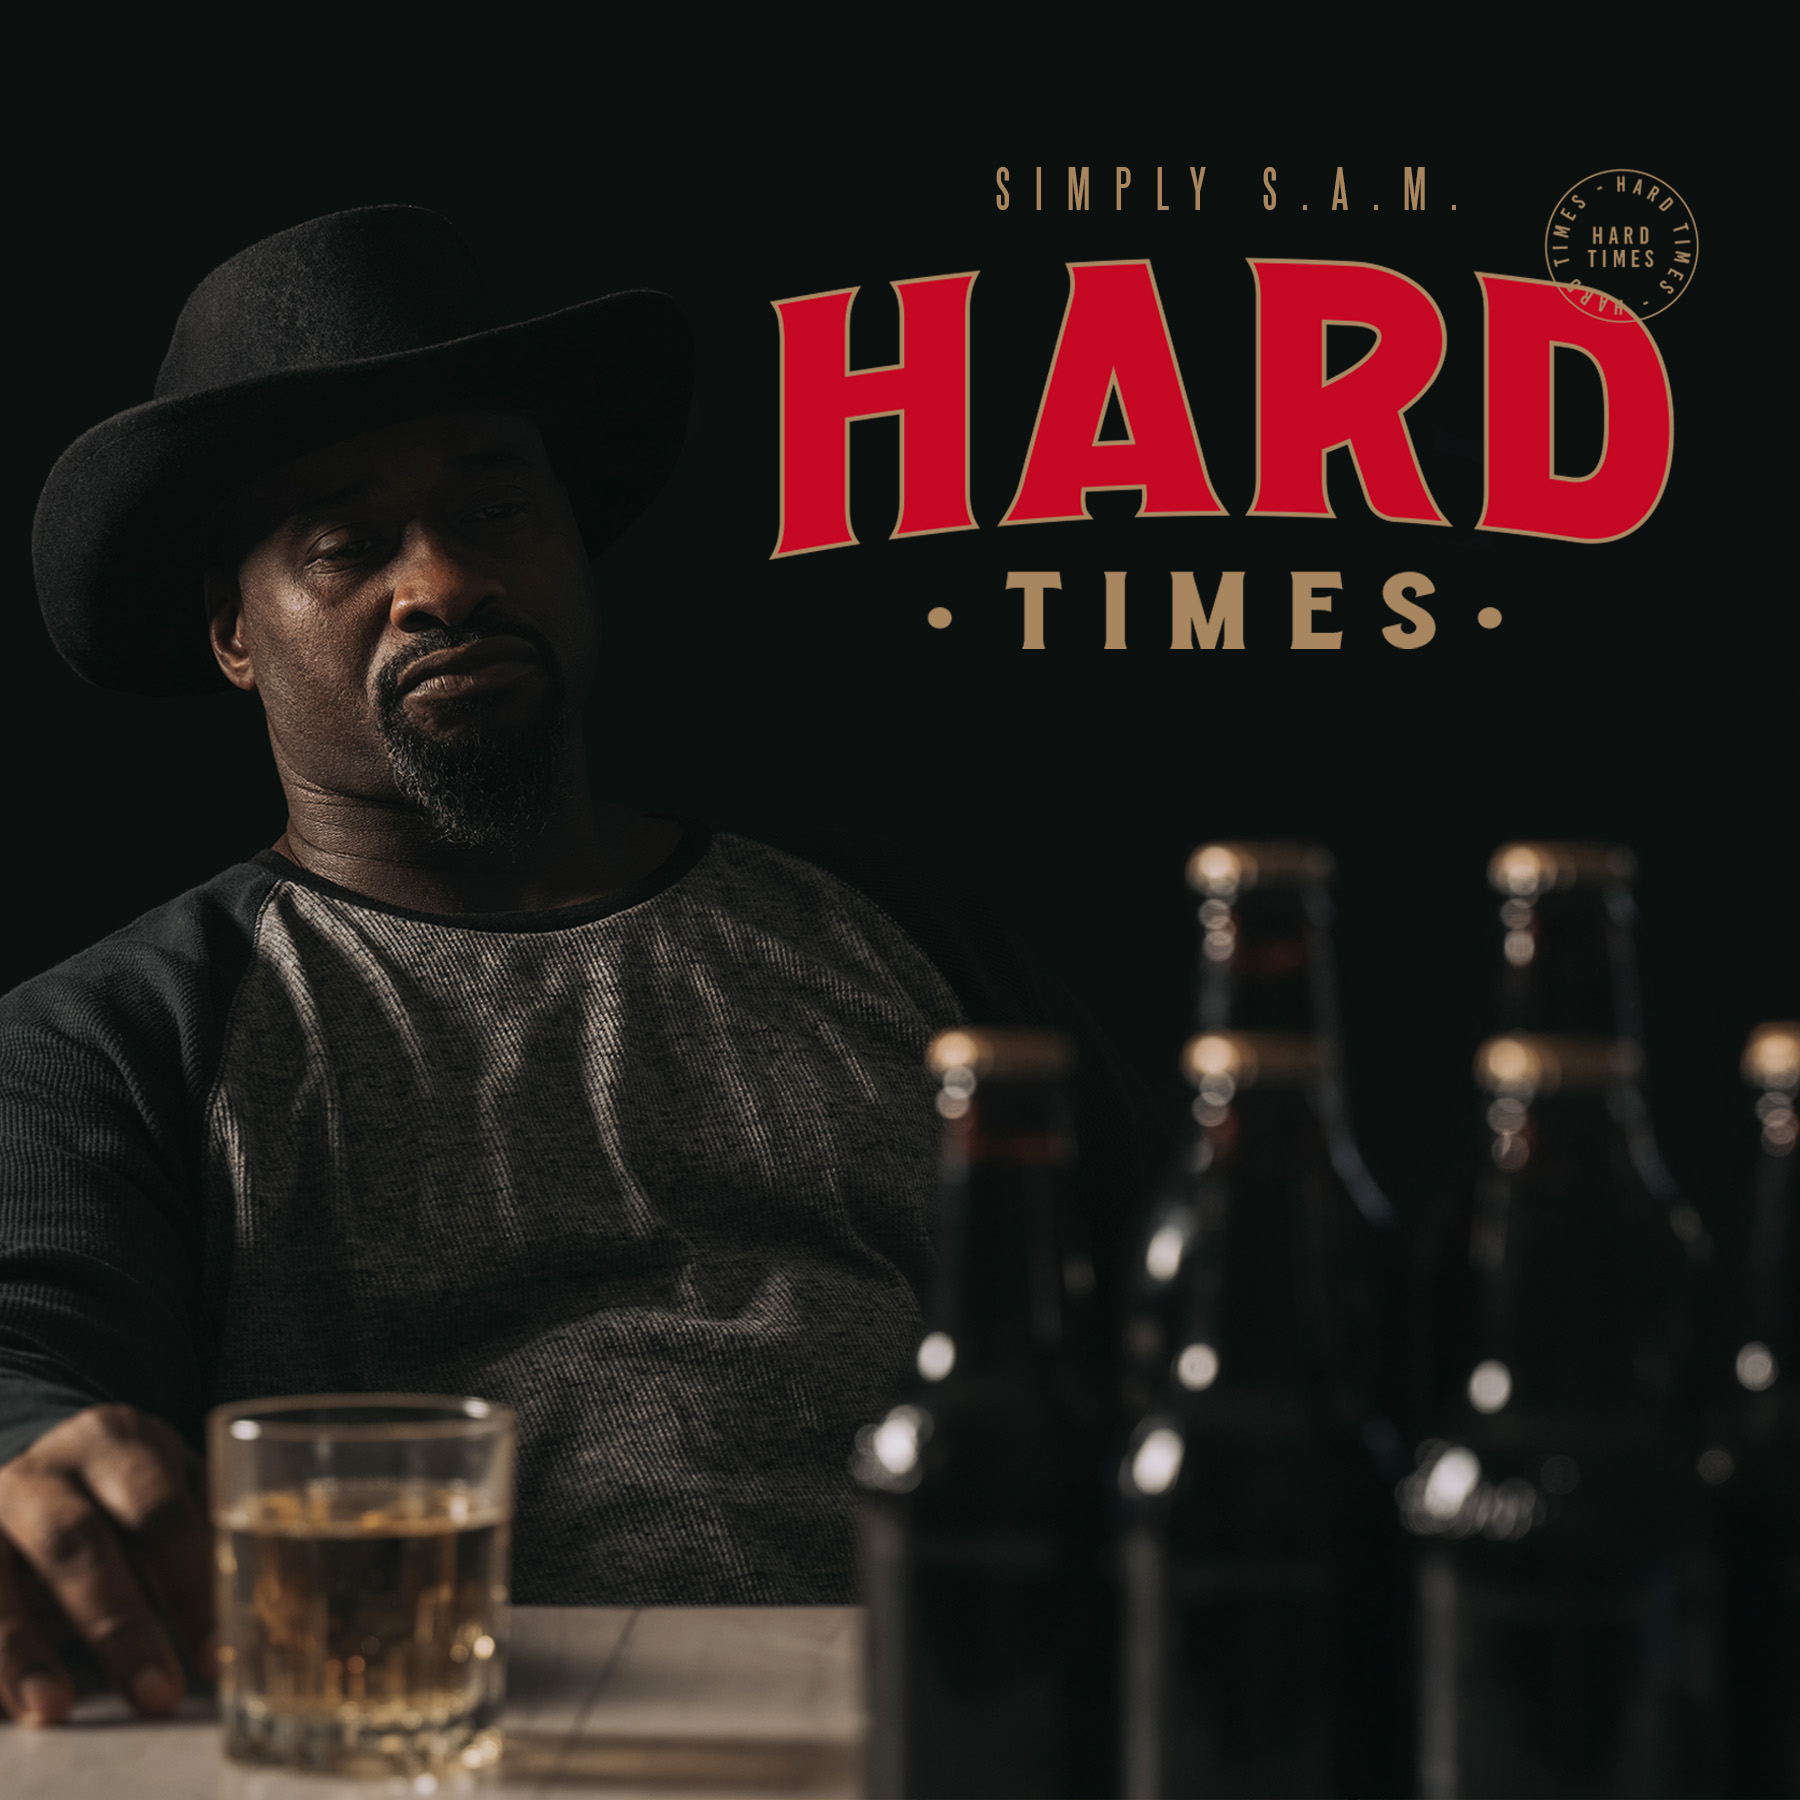 Simply S.A.M. - Hard Times (Single)